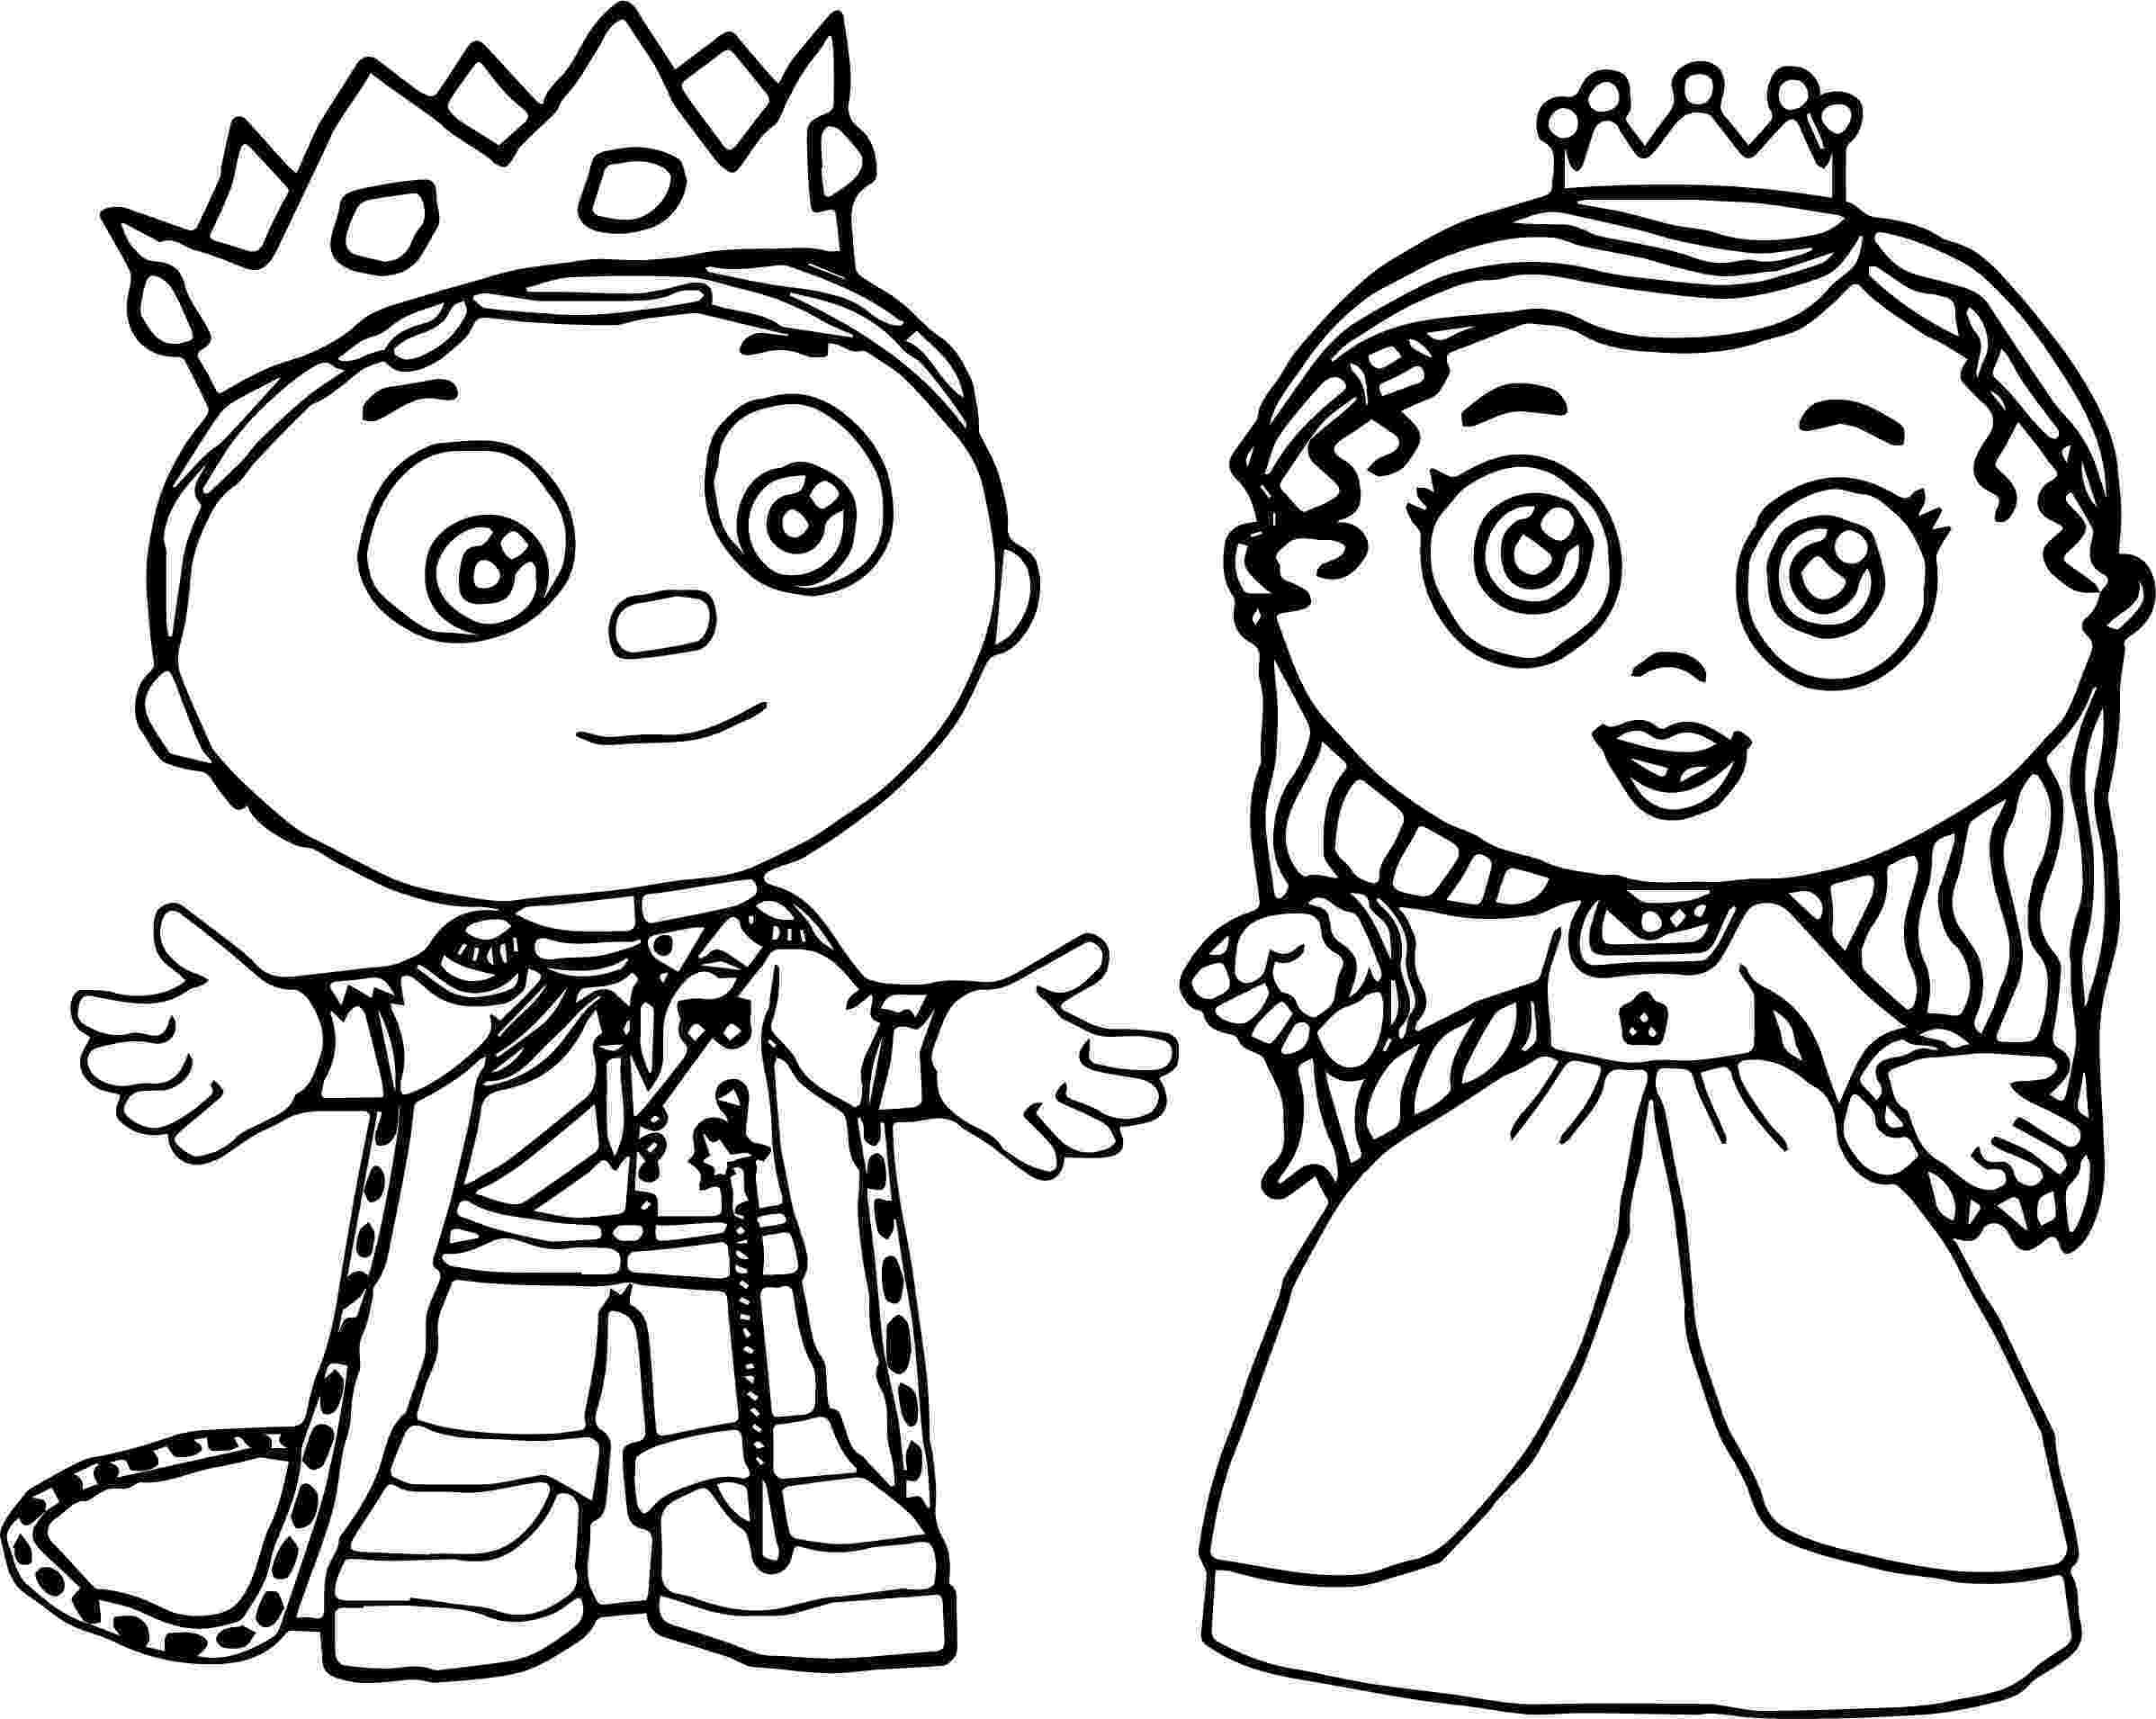 super colouring pages super why coloring pages best coloring pages for kids pages colouring super